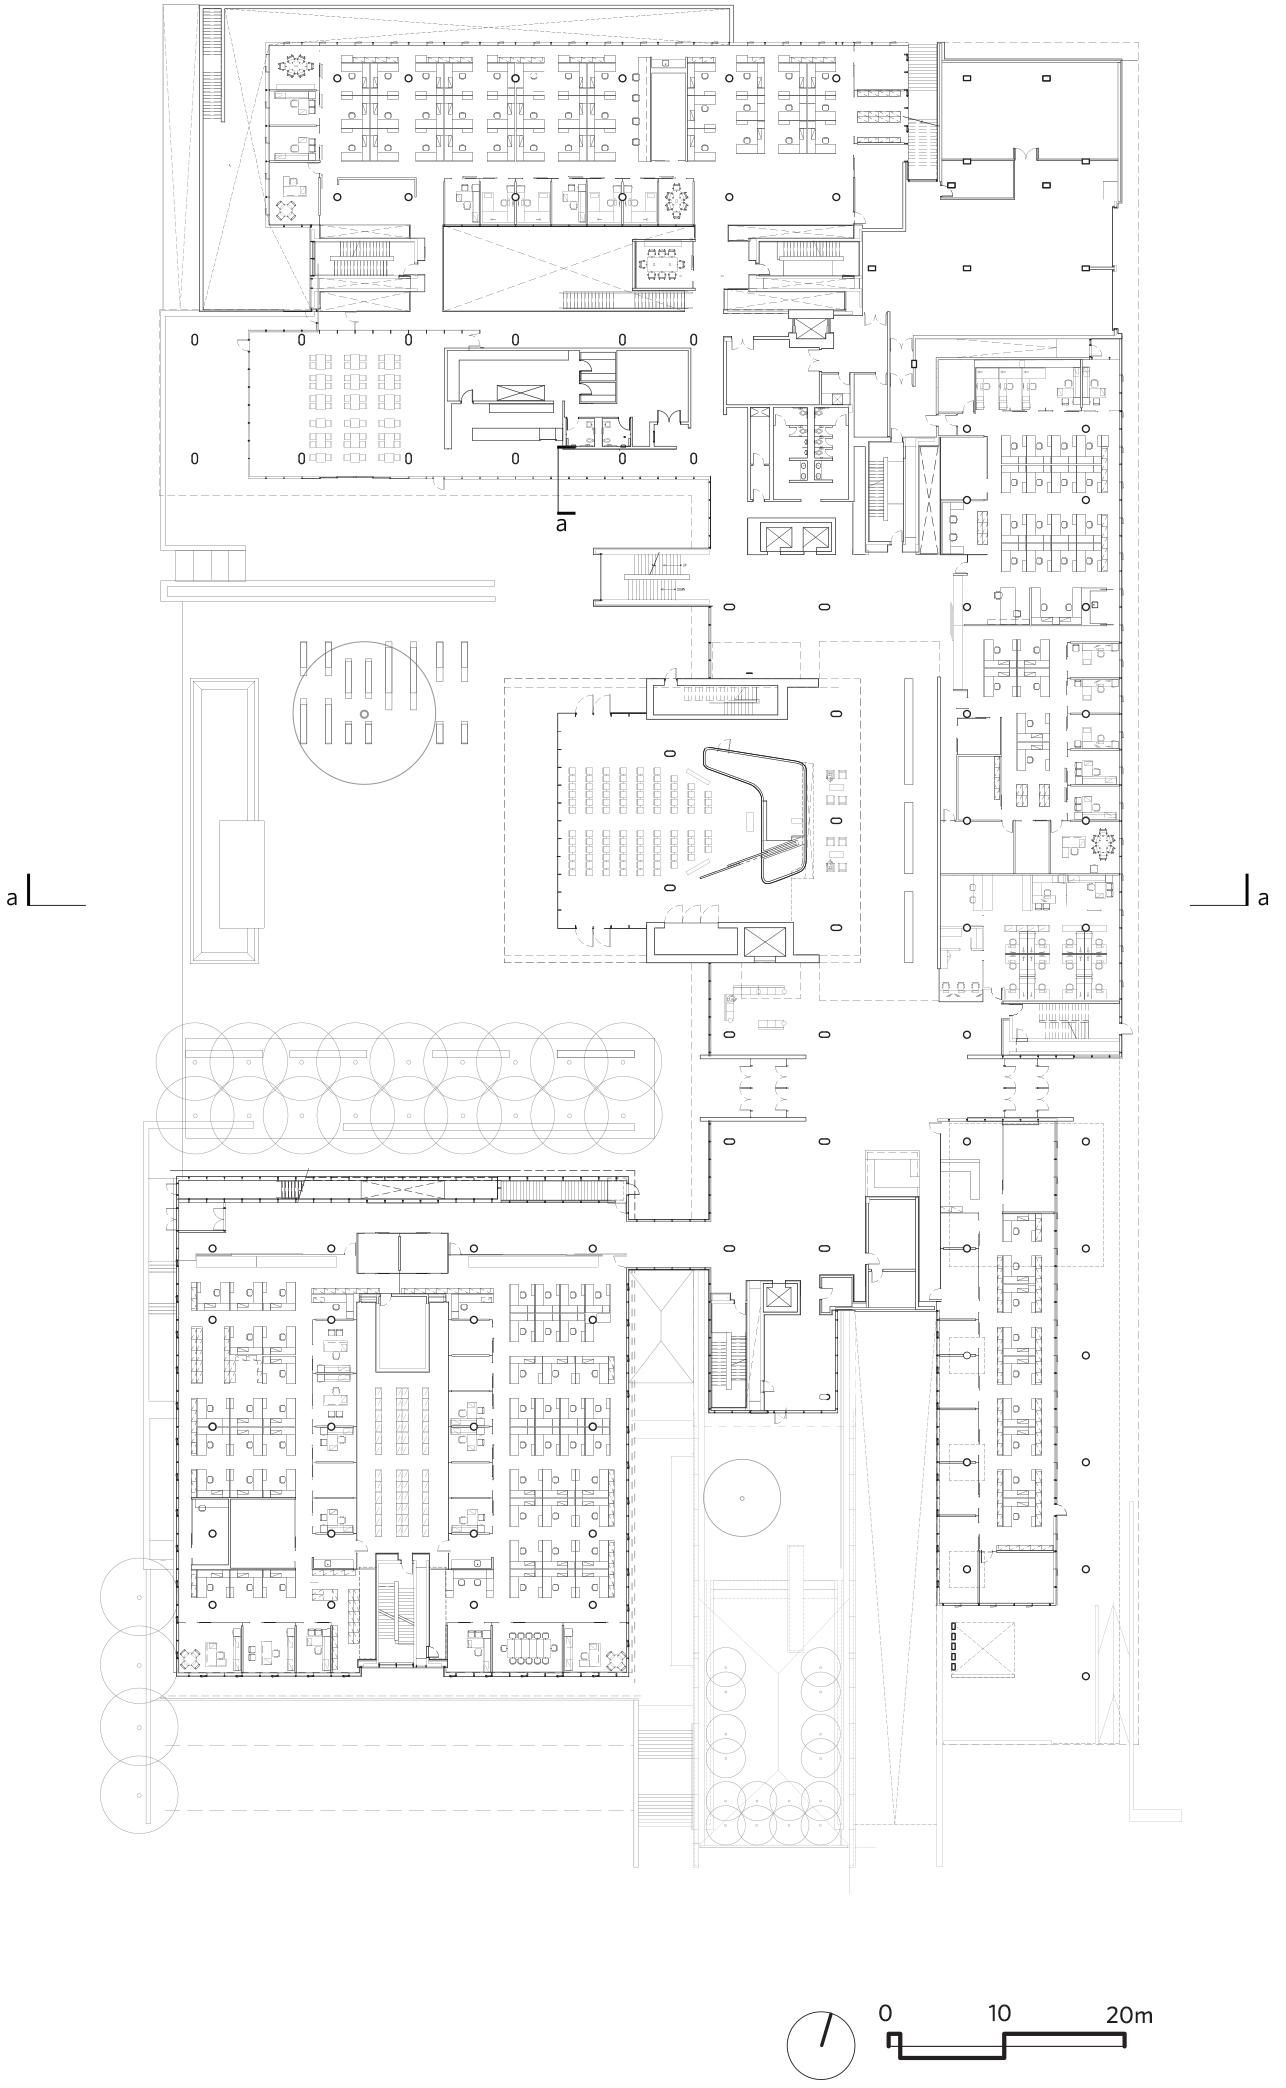 Pin By Richmond On - Pinterest - Hall, Design Competitions